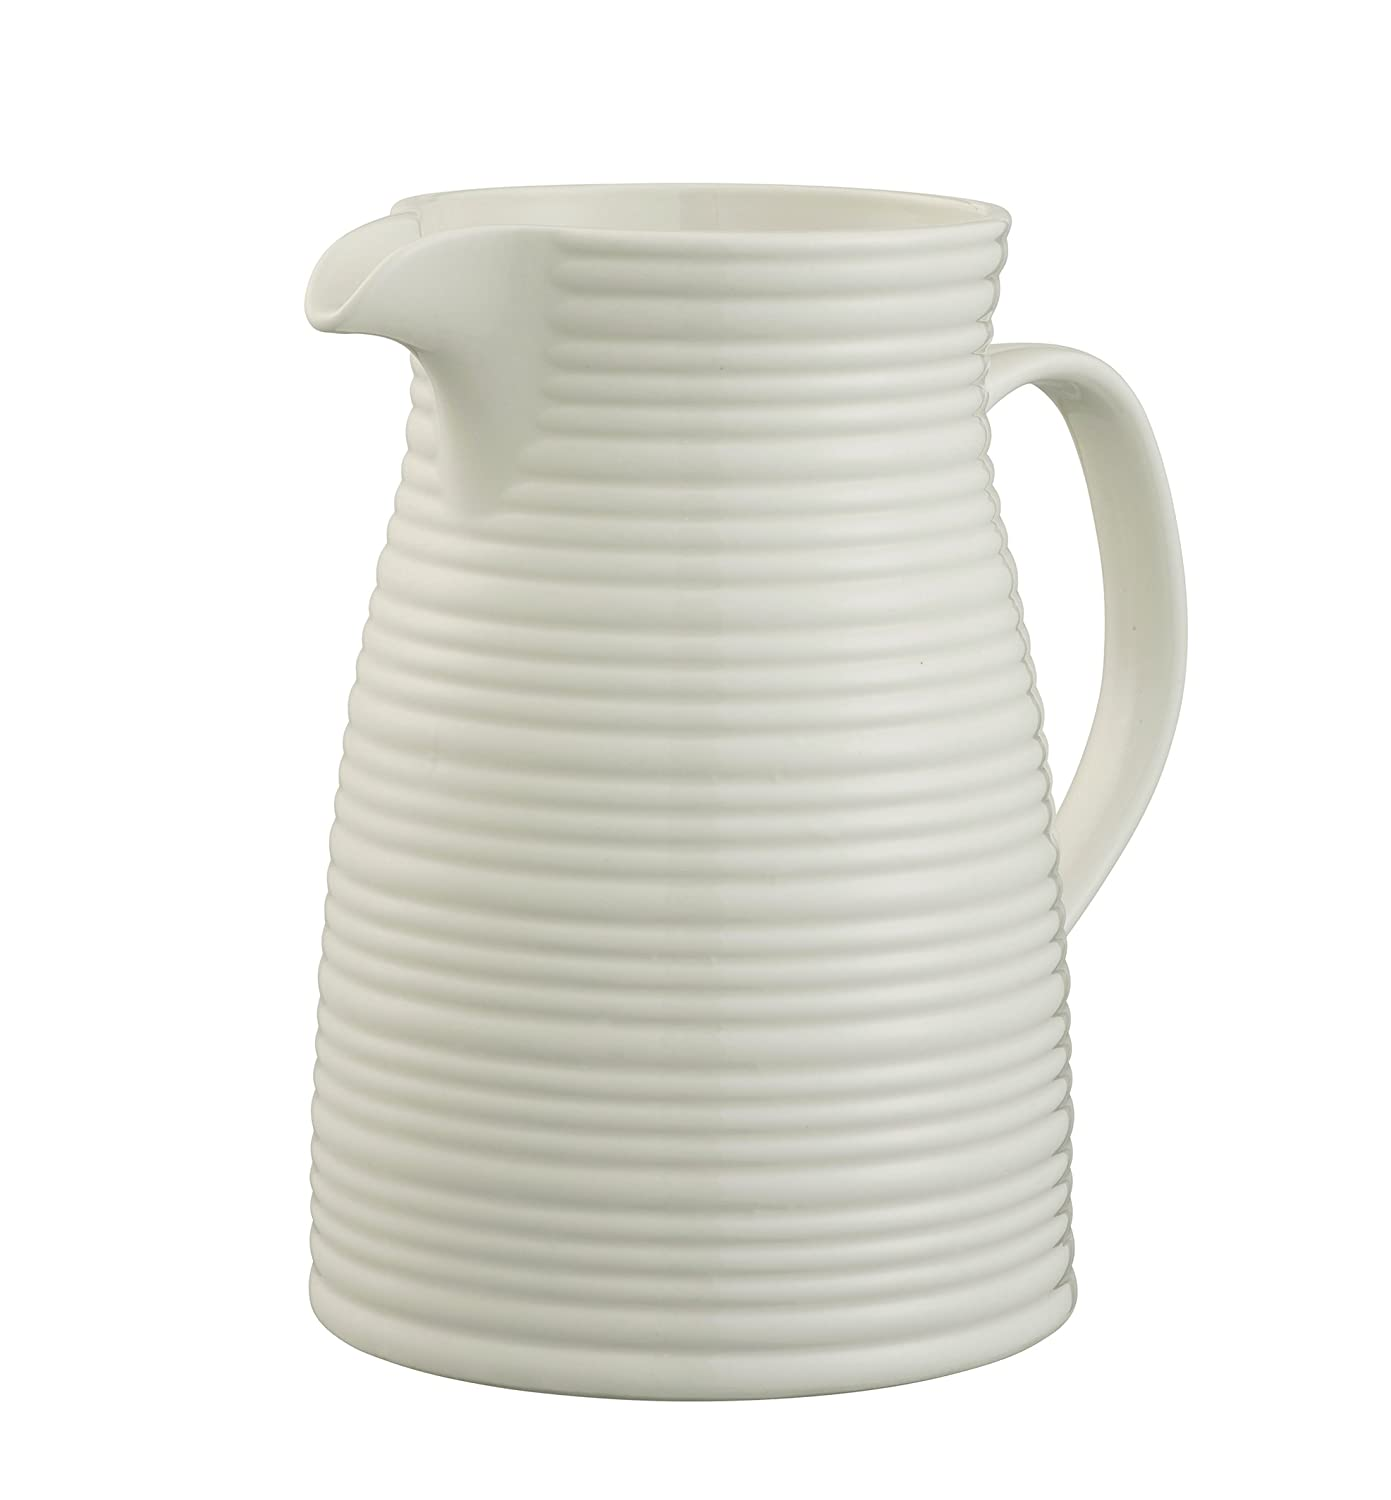 Belleek Pottery Ripple Jug, White 7977